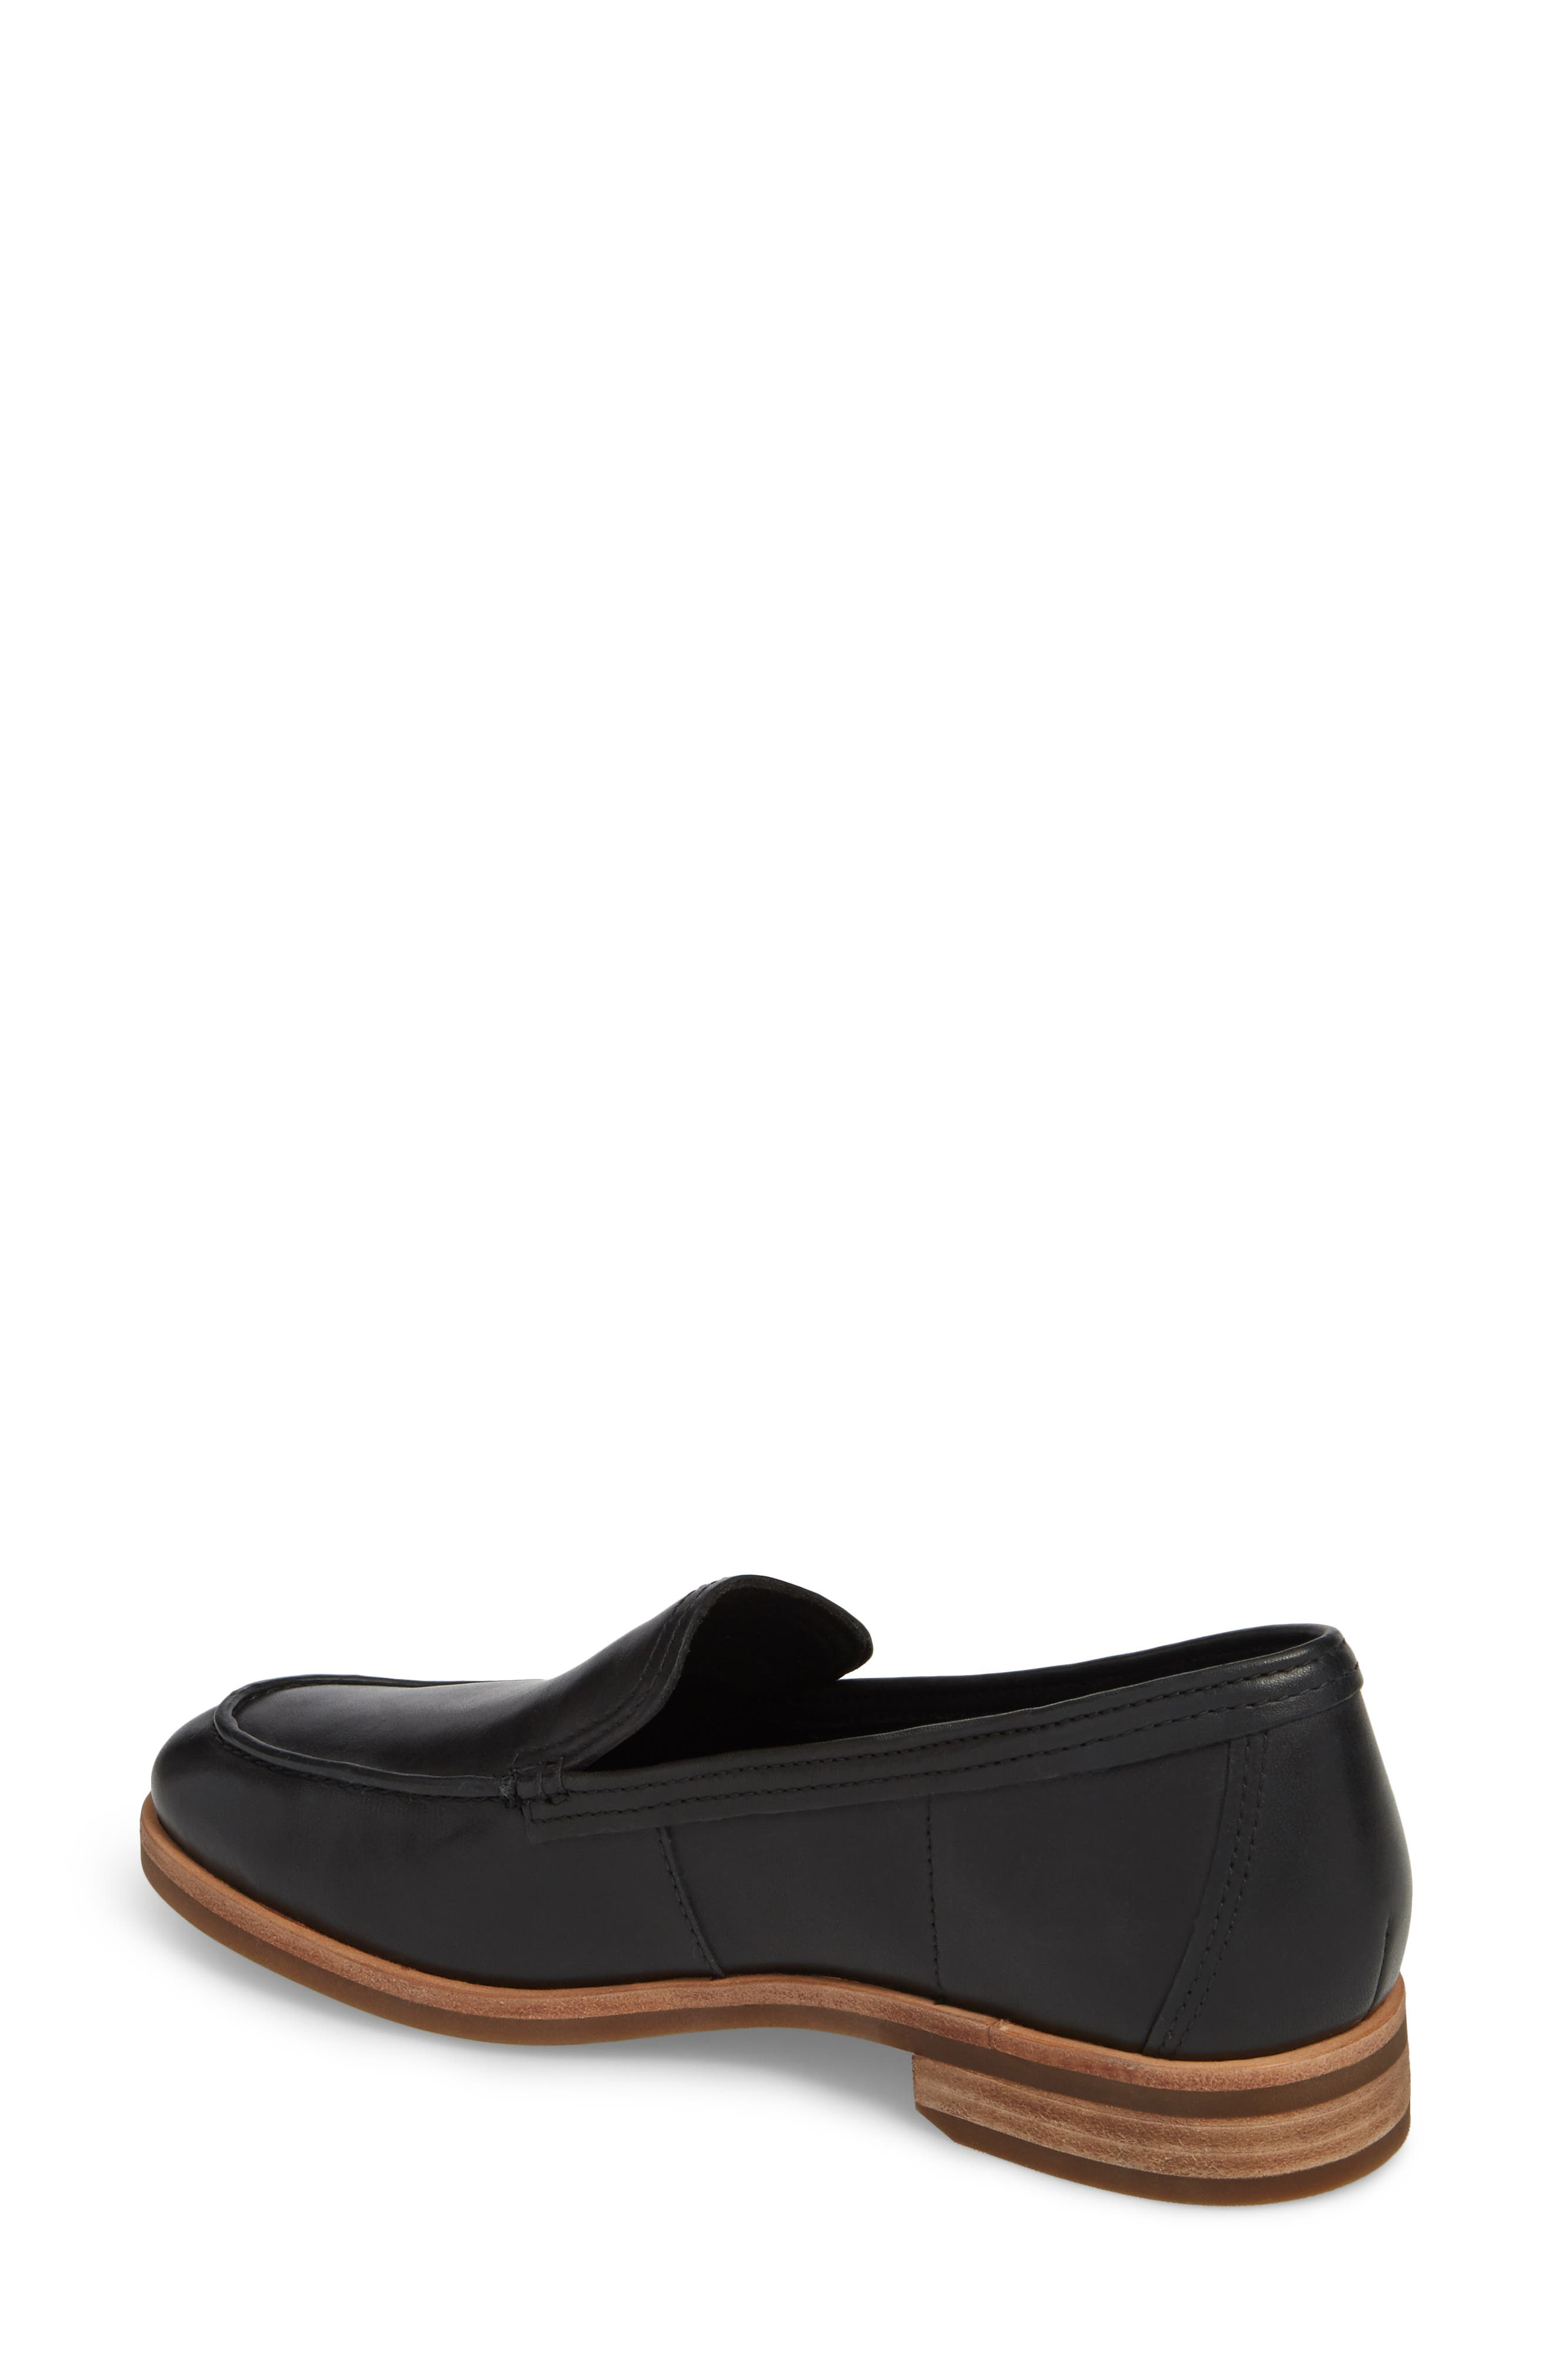 Somers Falls Loafer,                             Alternate thumbnail 2, color,                             001